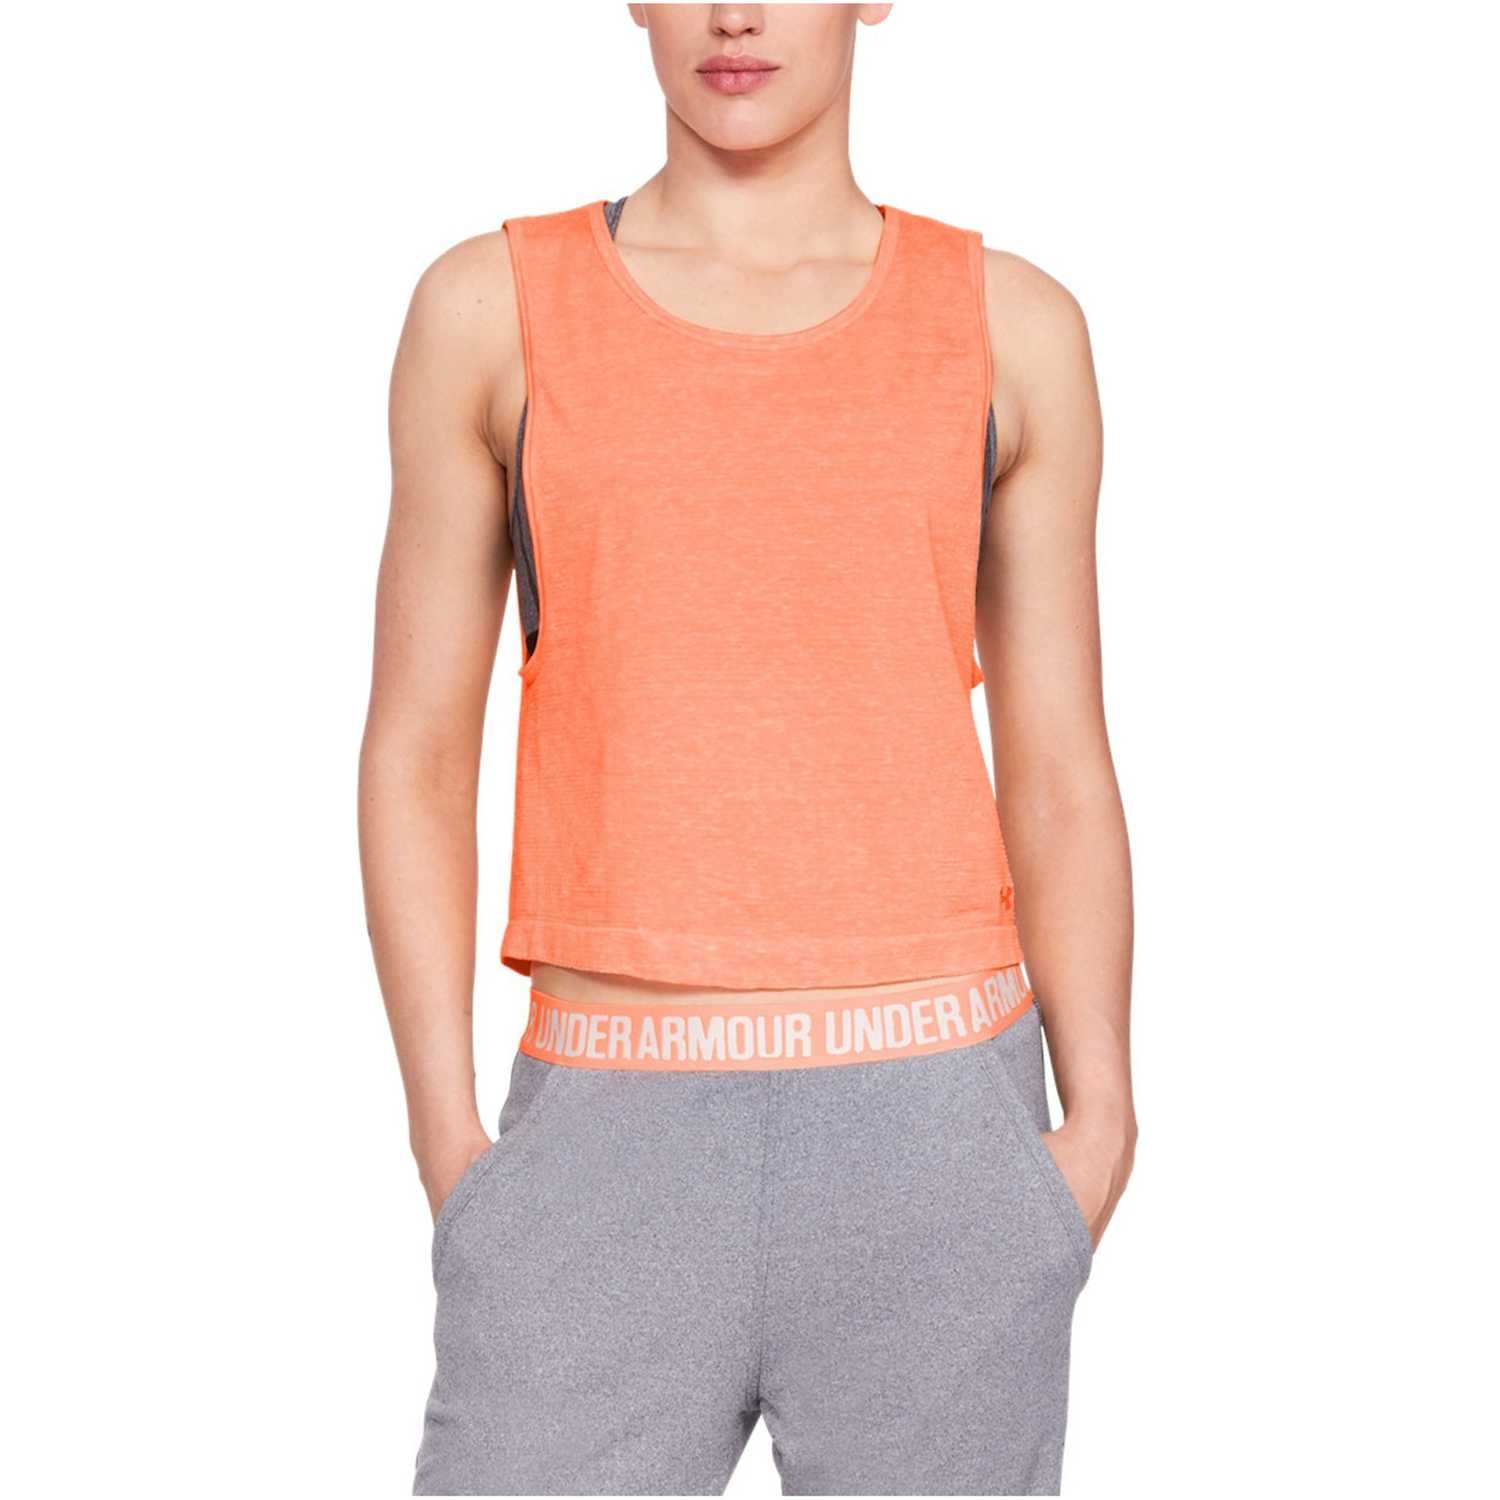 Under Armour TB Seamless Muscle Spacedye Tank-ORG Naranja Tank Tops